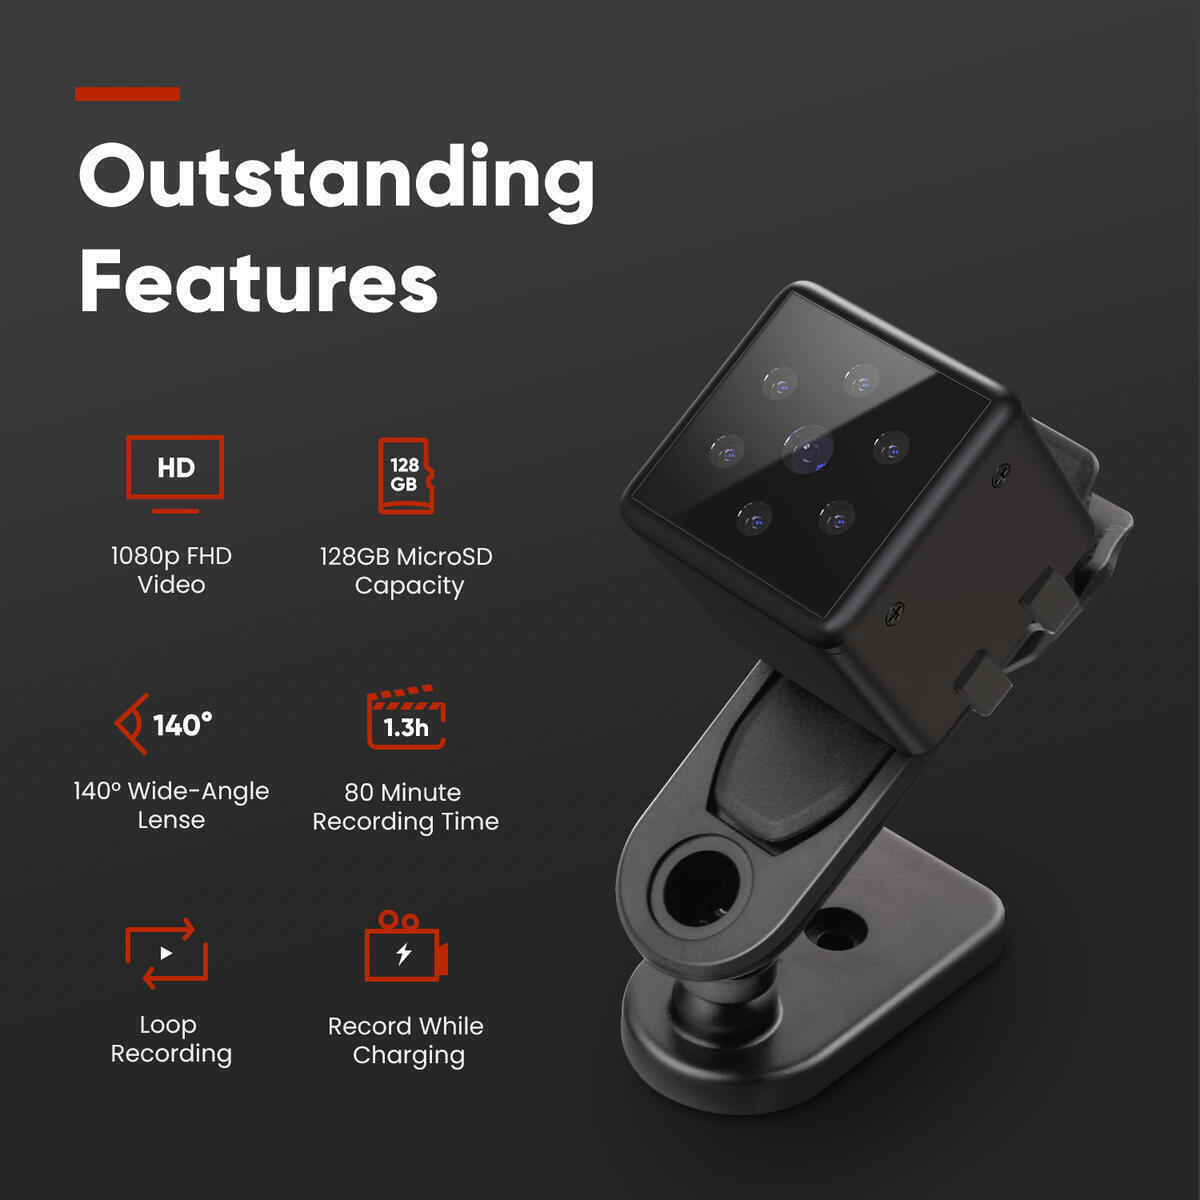 Mini Spy Camera 1080p Full HD - Mountable Hidden Camera With Motion Detection And Night Vision - Portable Spy Cam For Surveillance - Indoor Nanny Cam - Outdoor Security Camera - Supports 8 to 128GB SD